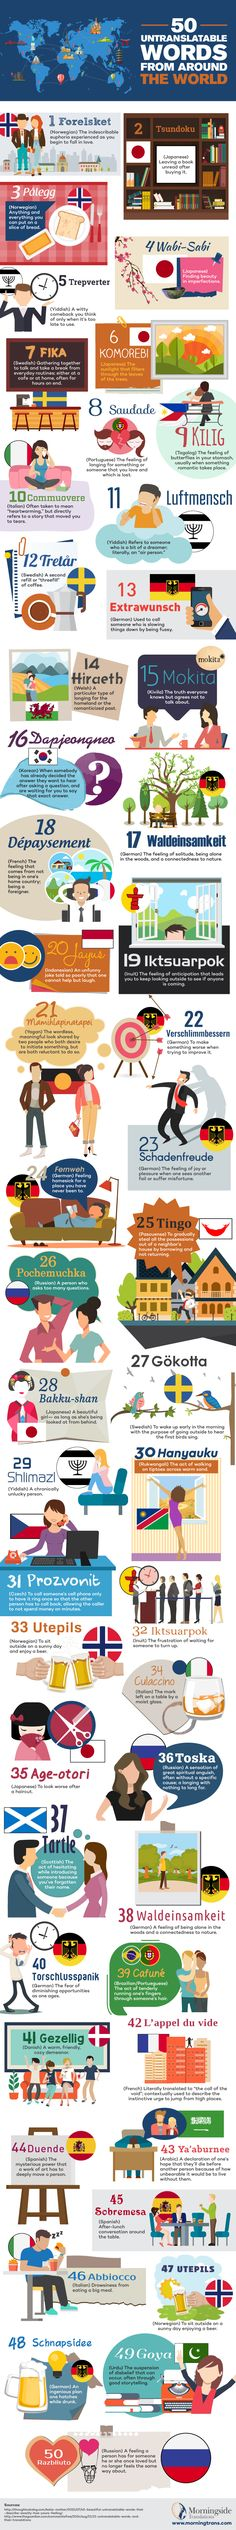 Infographic: 50 Untranslatable Words from Around the World